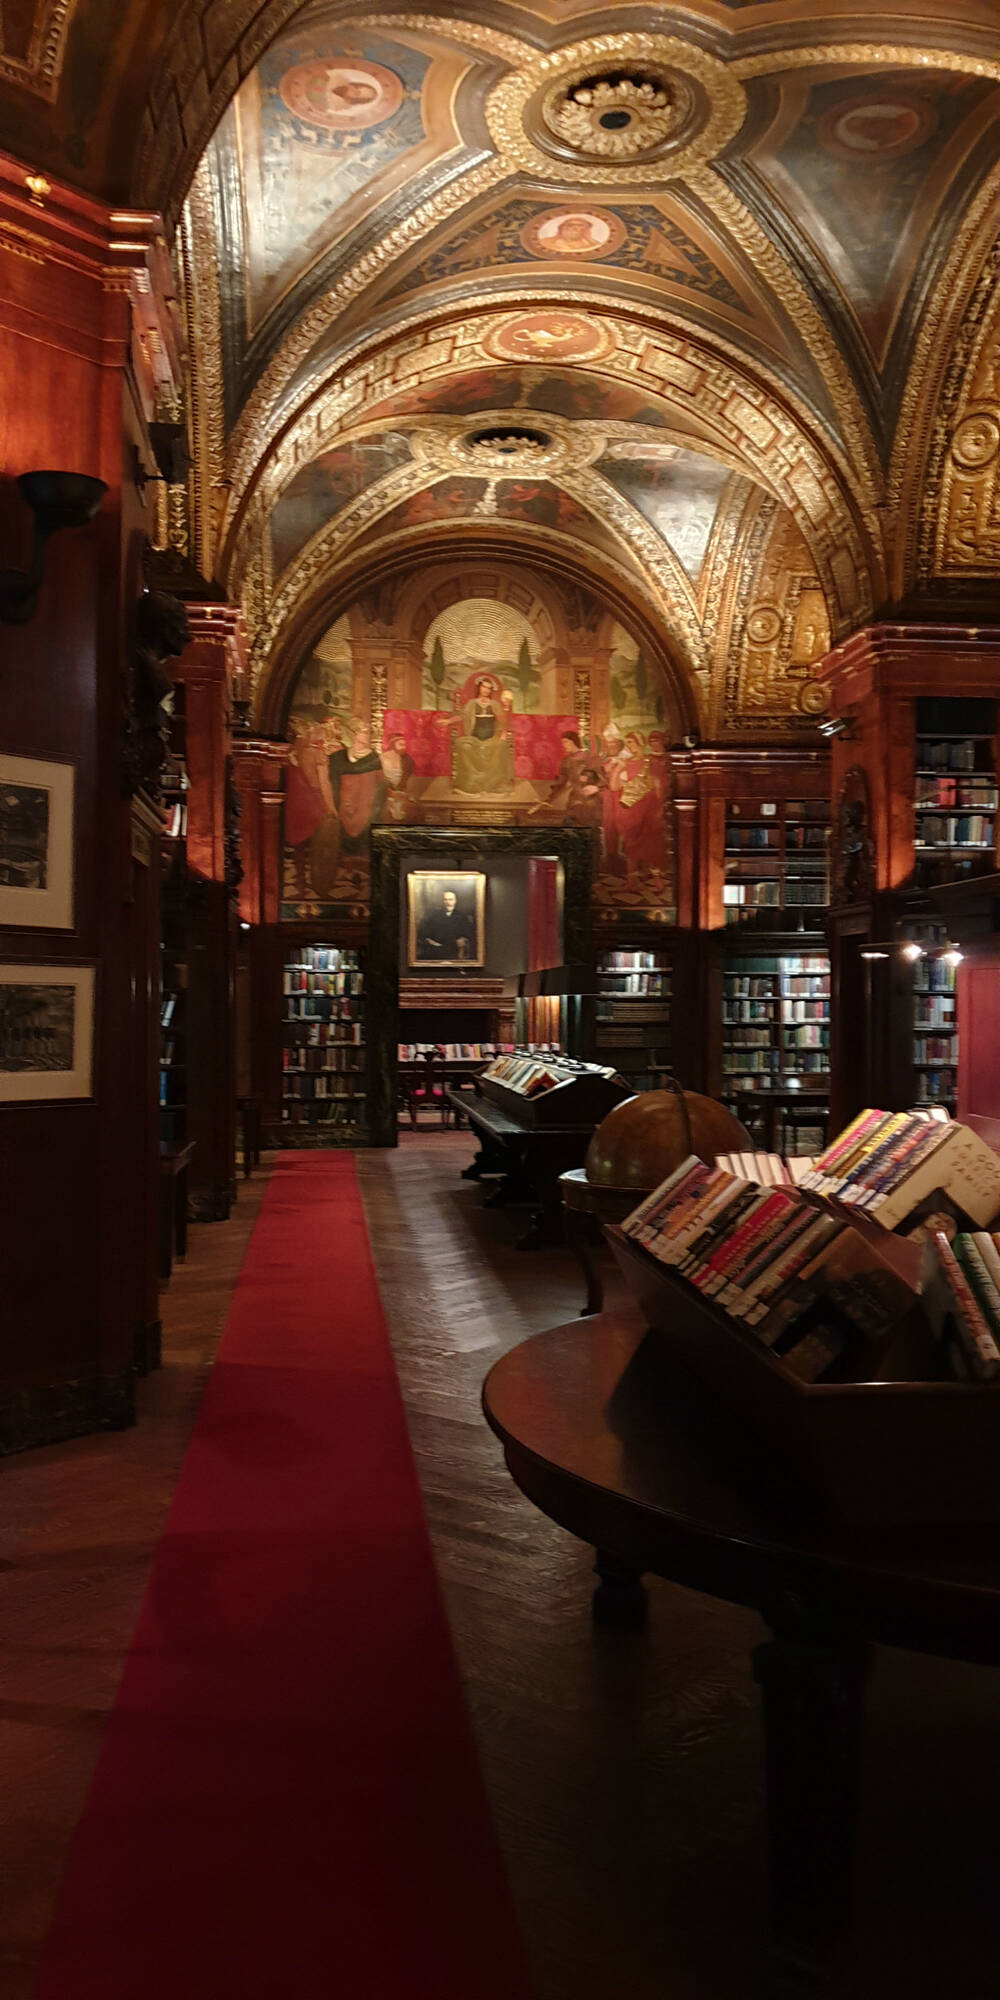 A grand library room with a vaulted painted ceiling in New York